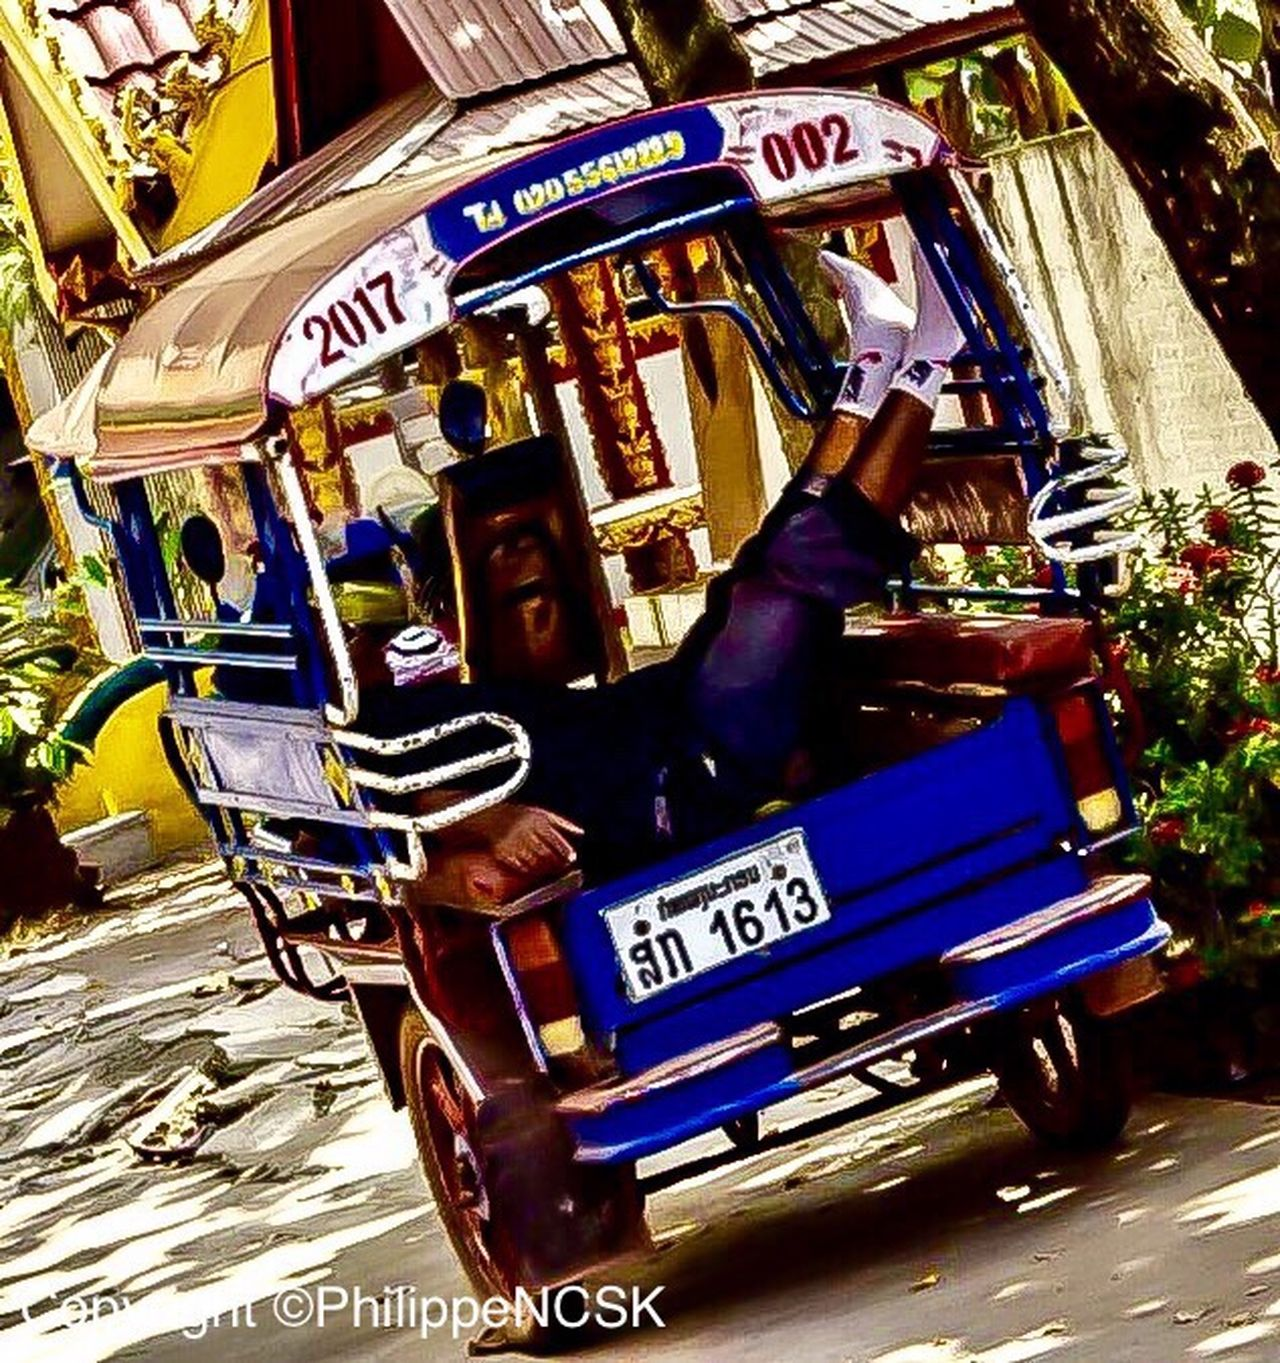 Travel Destinations Outdoors Laos ASIA Lifestyles Moment City Life 500px Streetphotography Instagram Urbanphotography Couleurs Vientiane Colors Men Nikon TukTuk Dormir